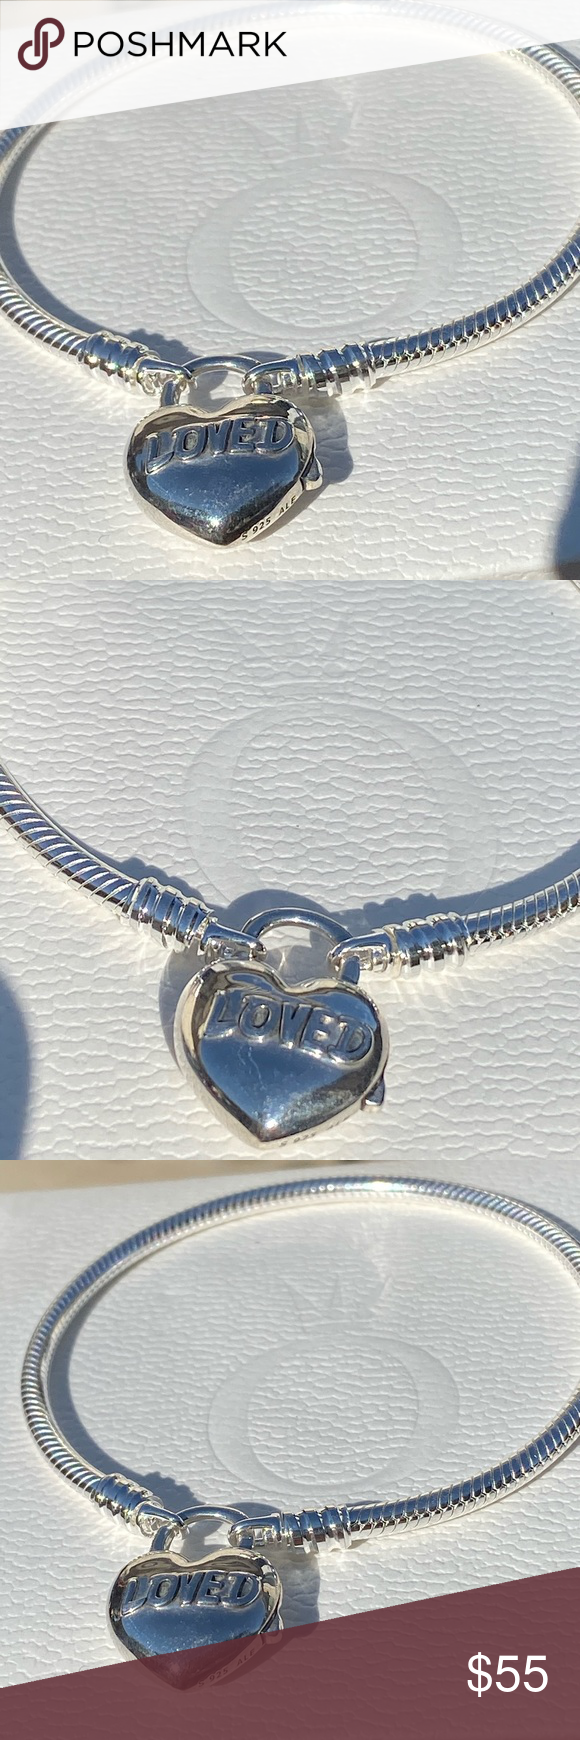 21+ You are loved jewelry collection ideas